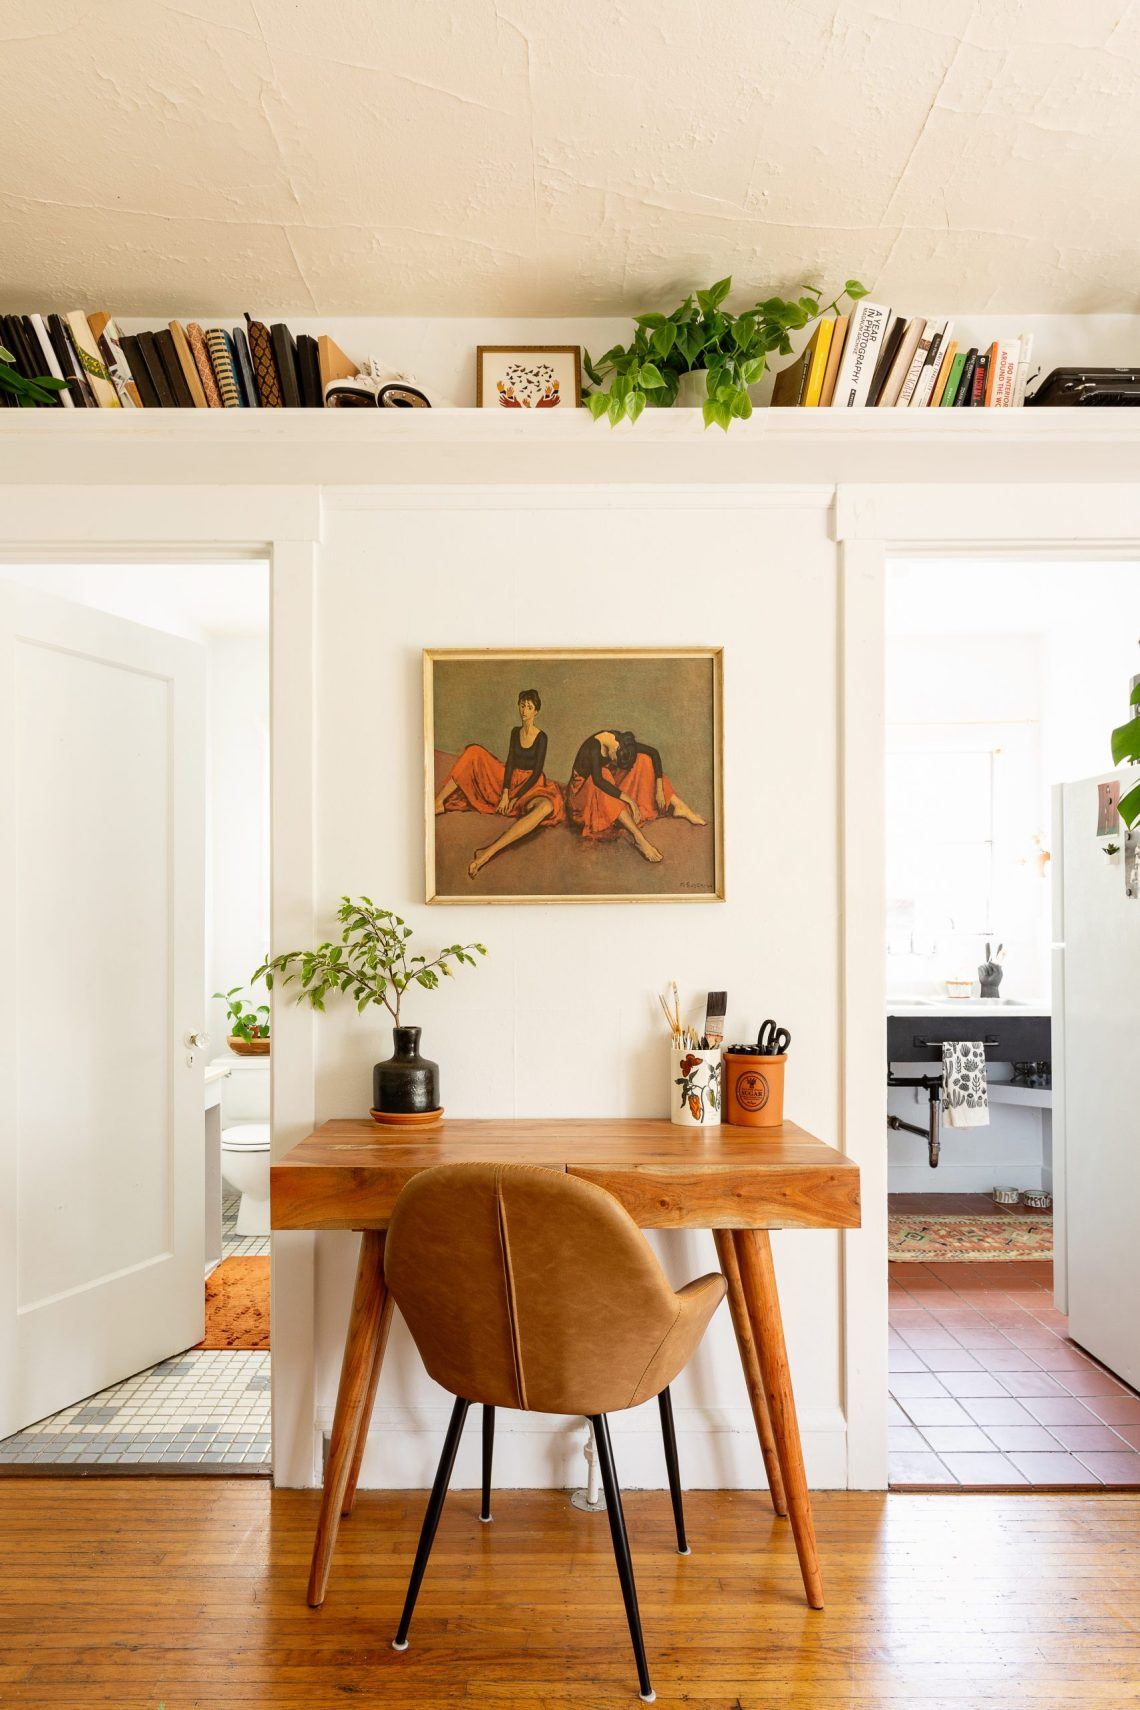 Home office workspace for small apartment, designed by Carrie Burch